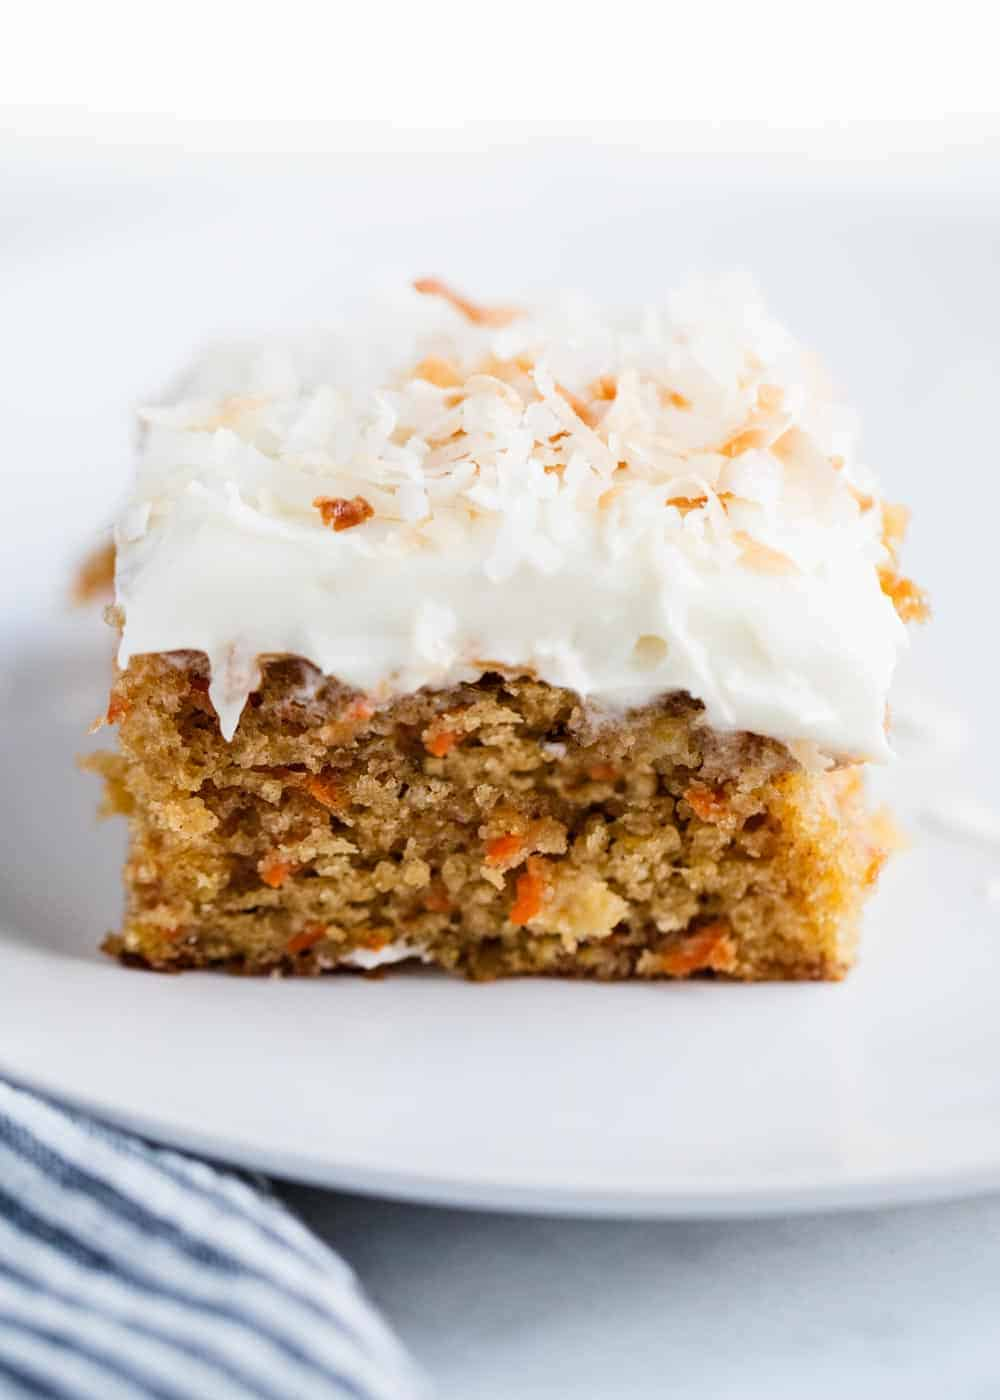 https://www.iheartnaptime.net/wp-content/uploads/2019/02/best-carrot-cake-recipe.jpg